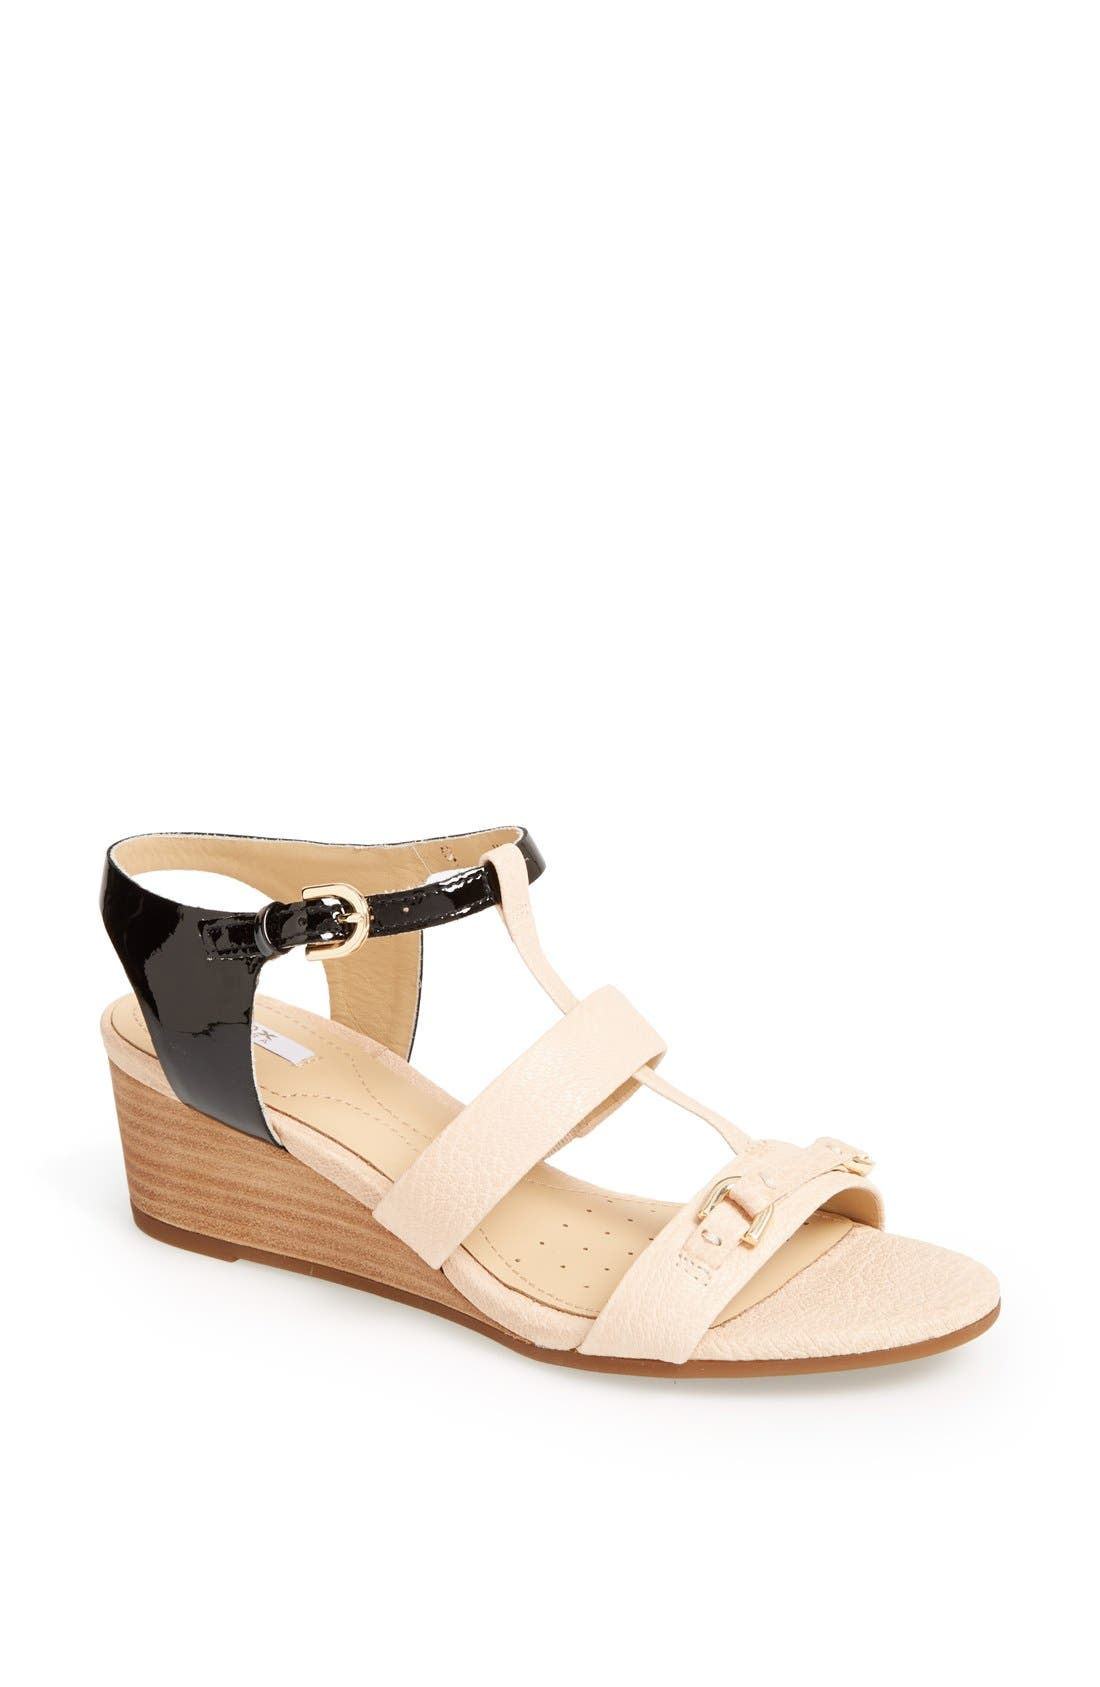 Alternate Image 1 Selected - Geox 'Lupe' Leather Sandal